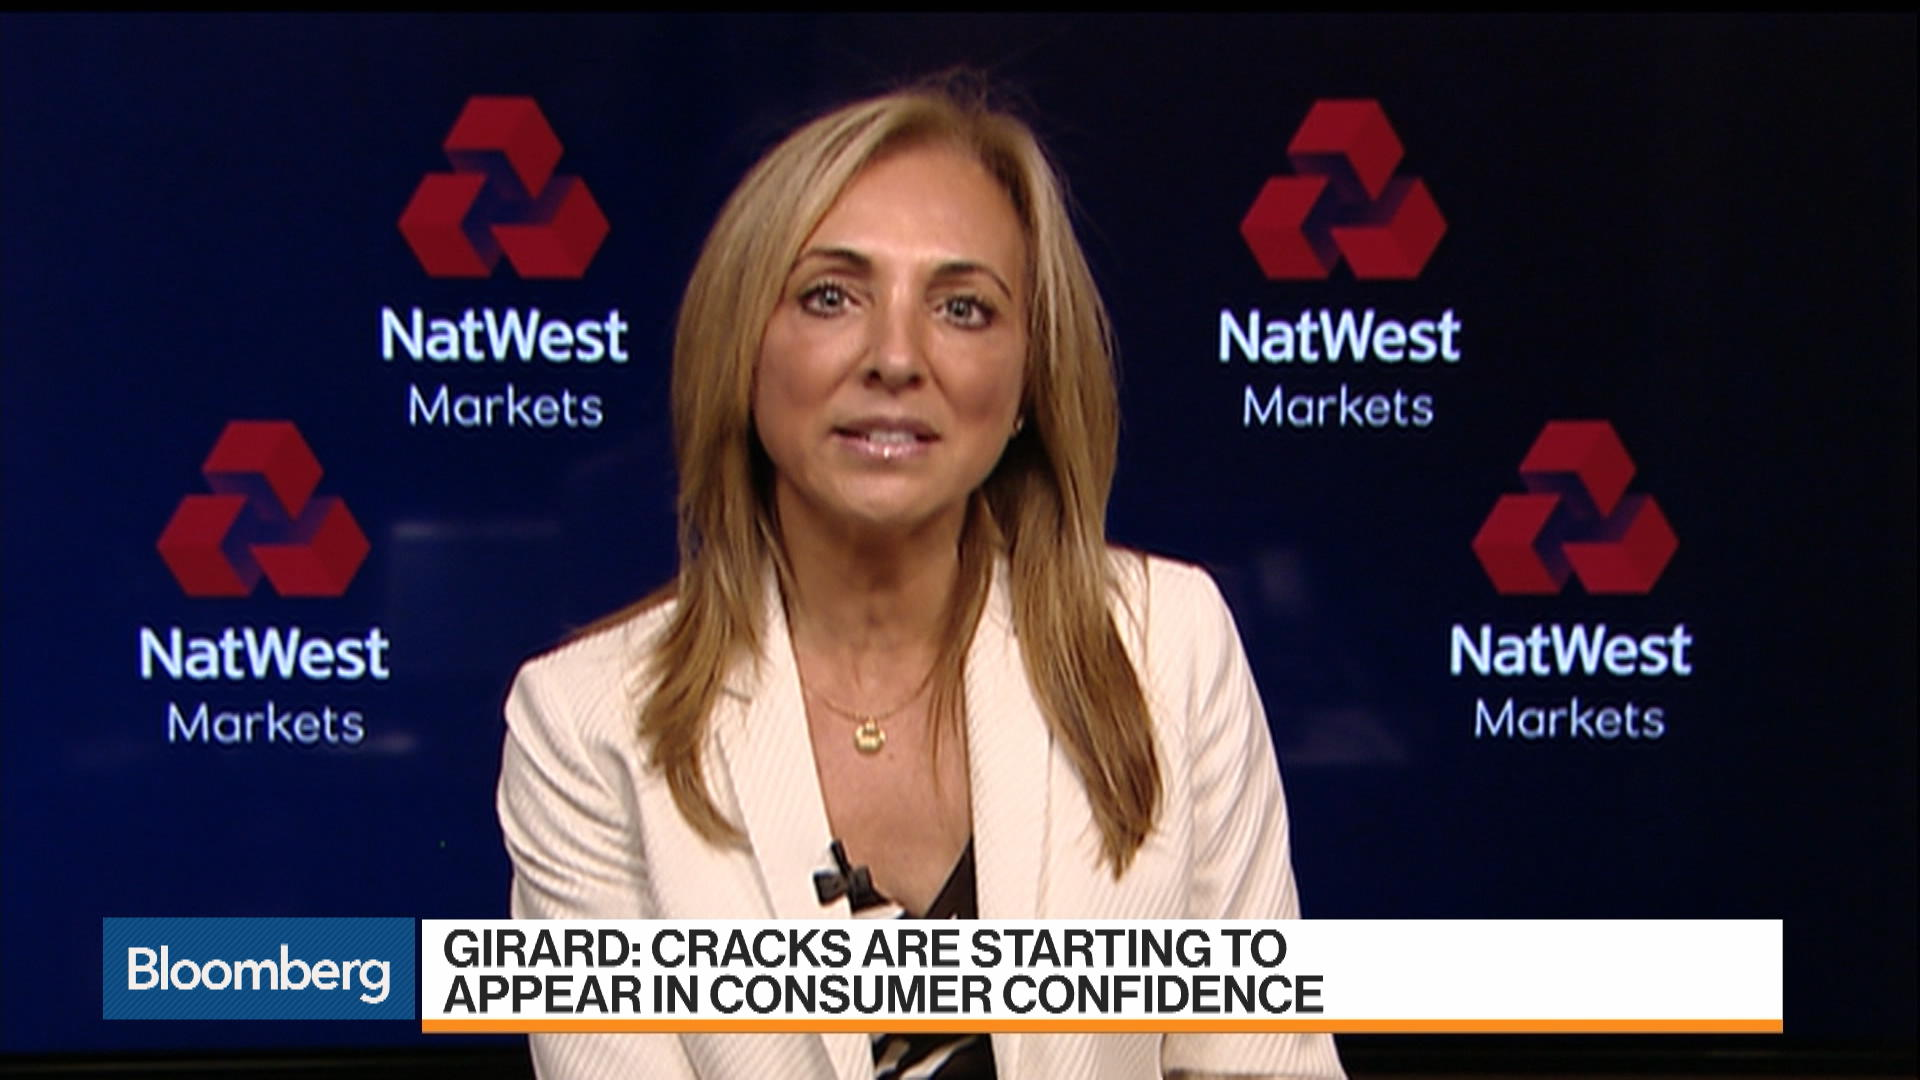 NatWest Markets' Girard Sees Loss of Consumer Confidence as Biggest Risk to U.S. Economy